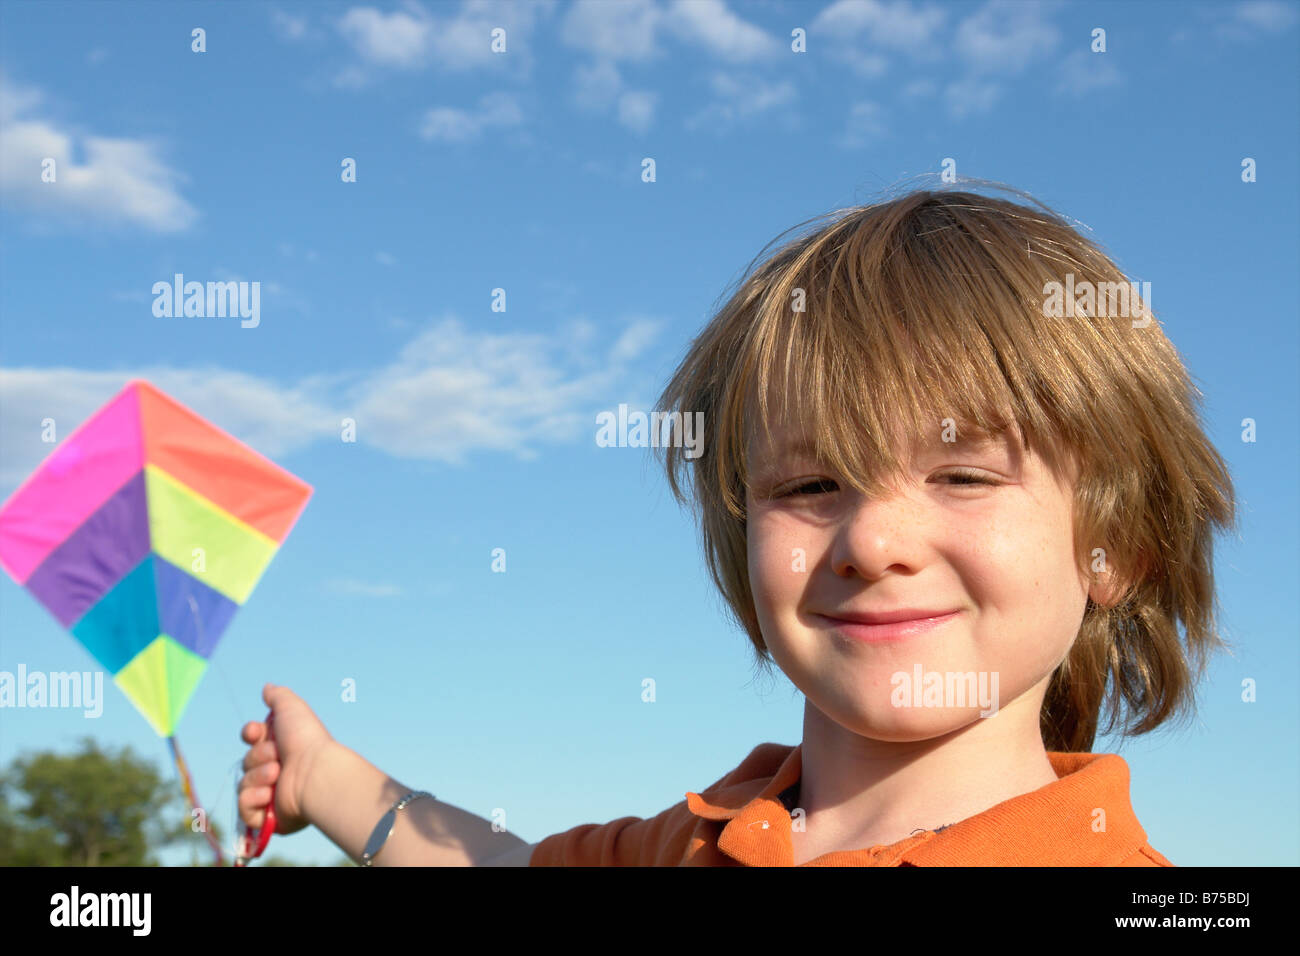 Six year old boy with kite, Winnipeg, Canada - Stock Image